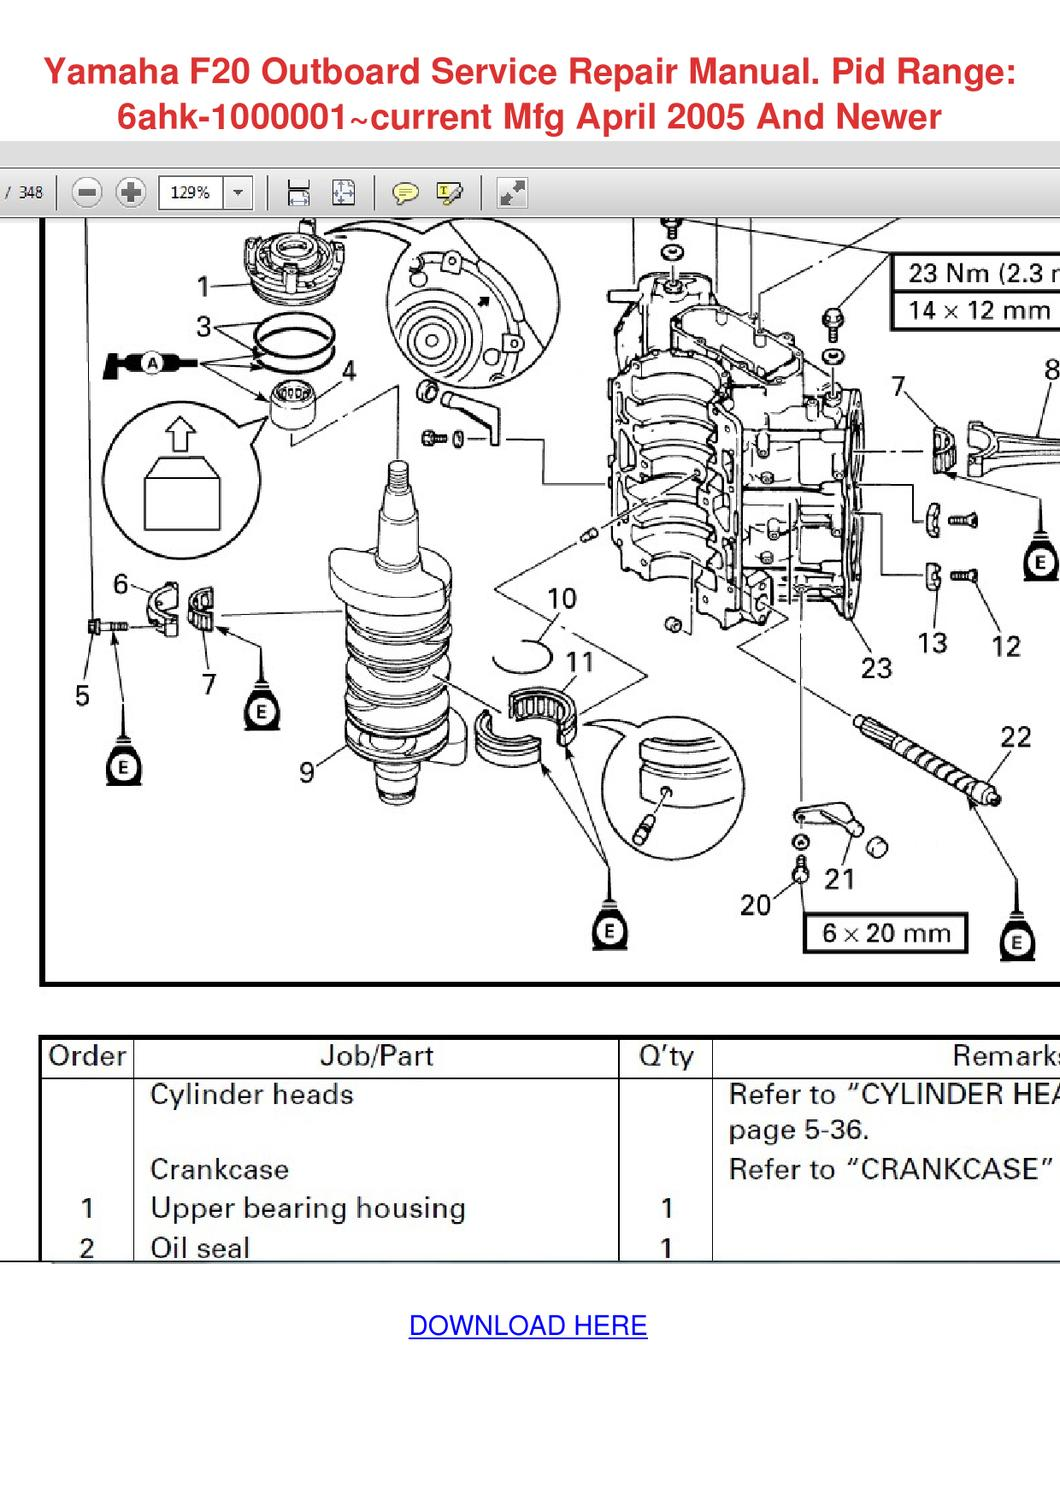 Yamaha F20 Outboard Service Repair Manual Pid By Marlen Clague